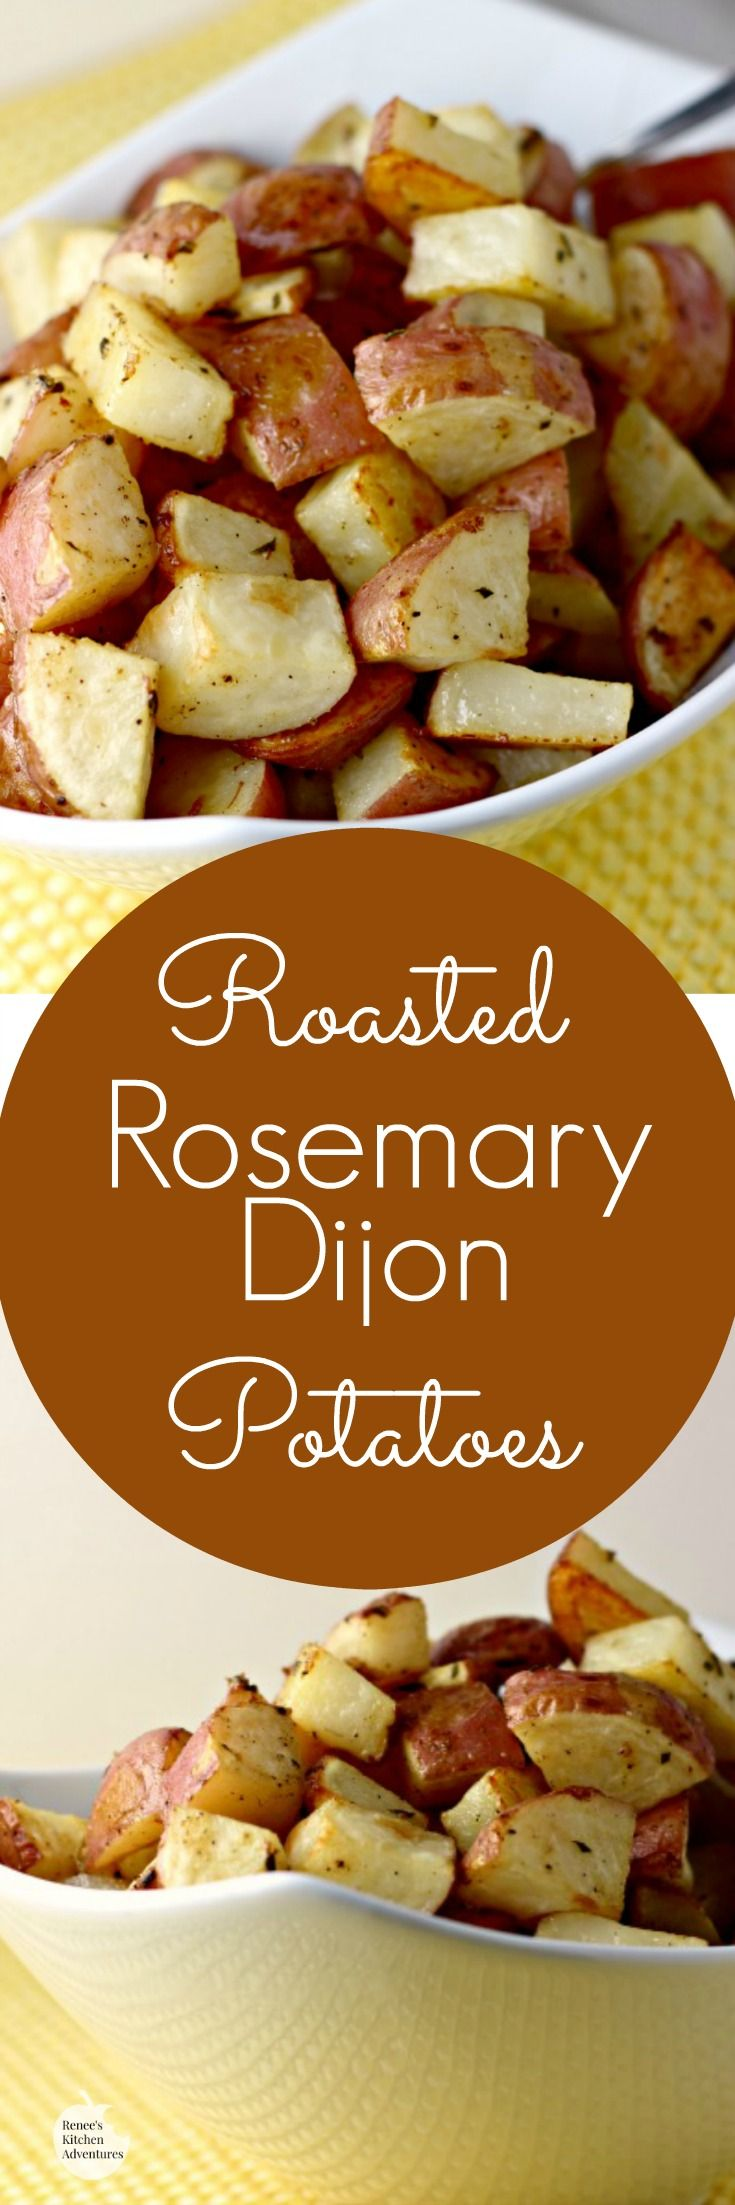 Roasted Rosemary Dijon Potatoes | by Renee's Kitchen Adventures - Easy recipe for a healthy potato side dish with pizzazz!